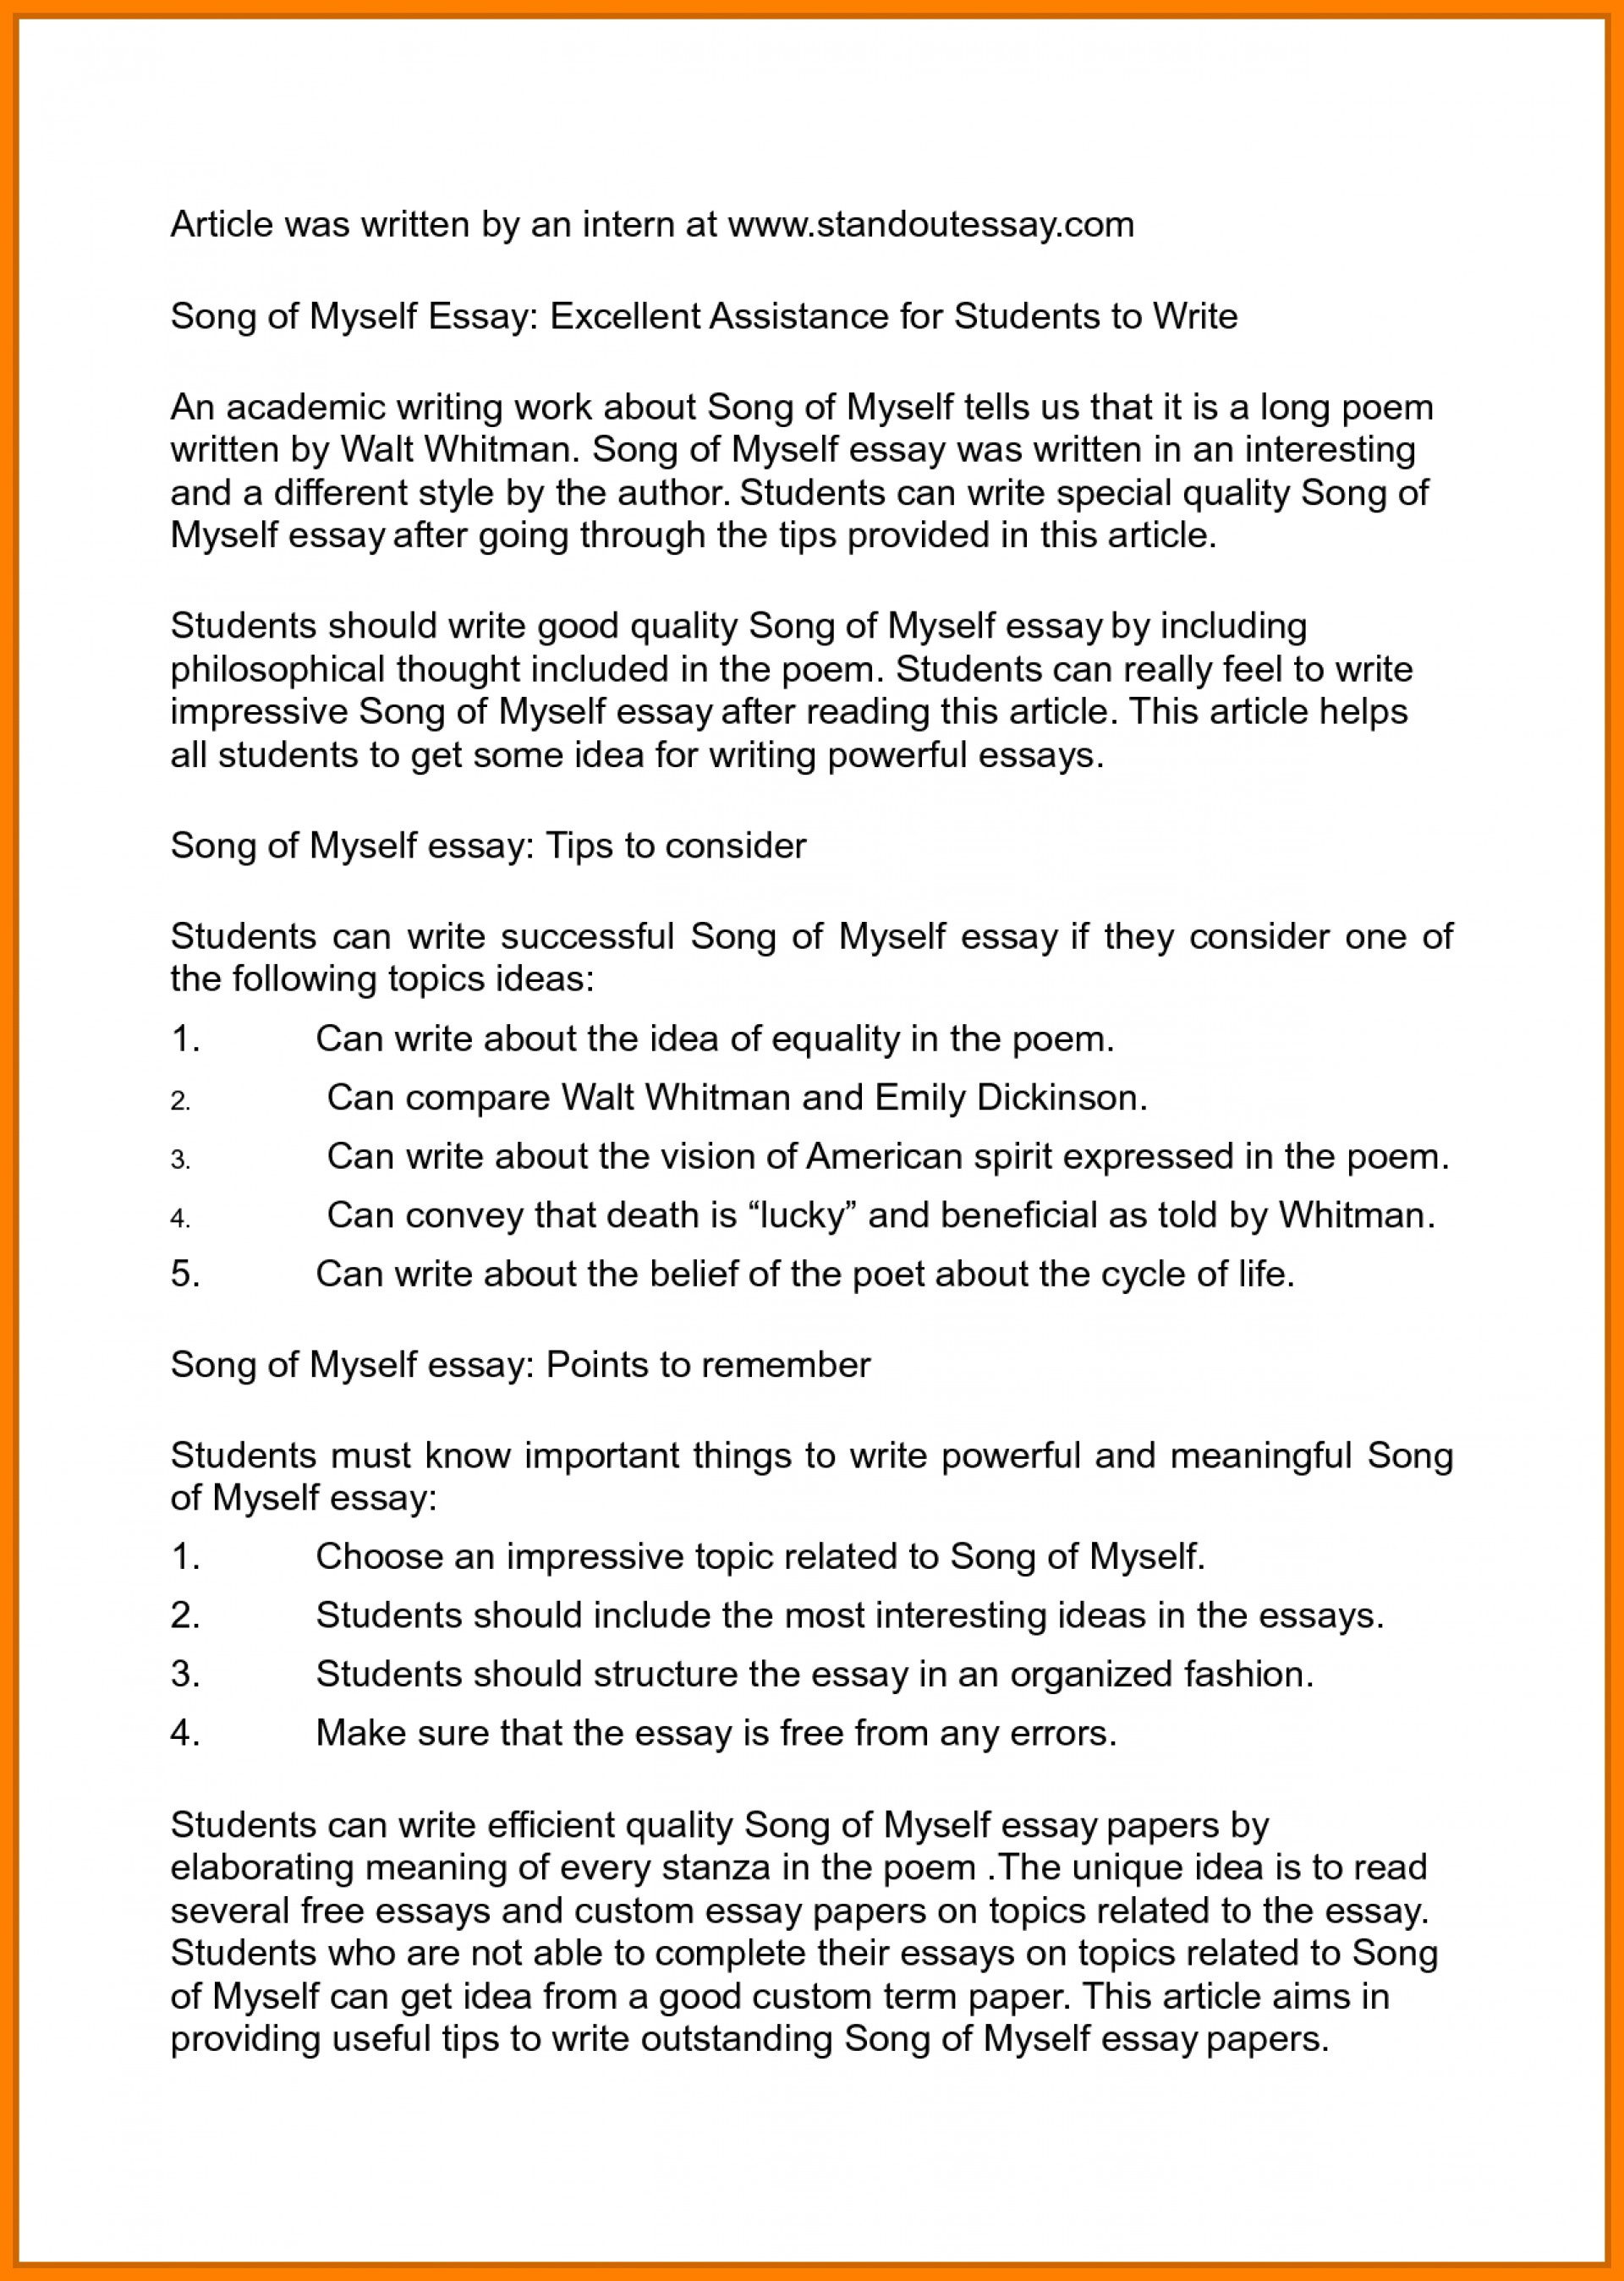 006 Essay Example Autobiography On Myself How To Write An Awful About Of Yourself Pdf Tagalog 1920